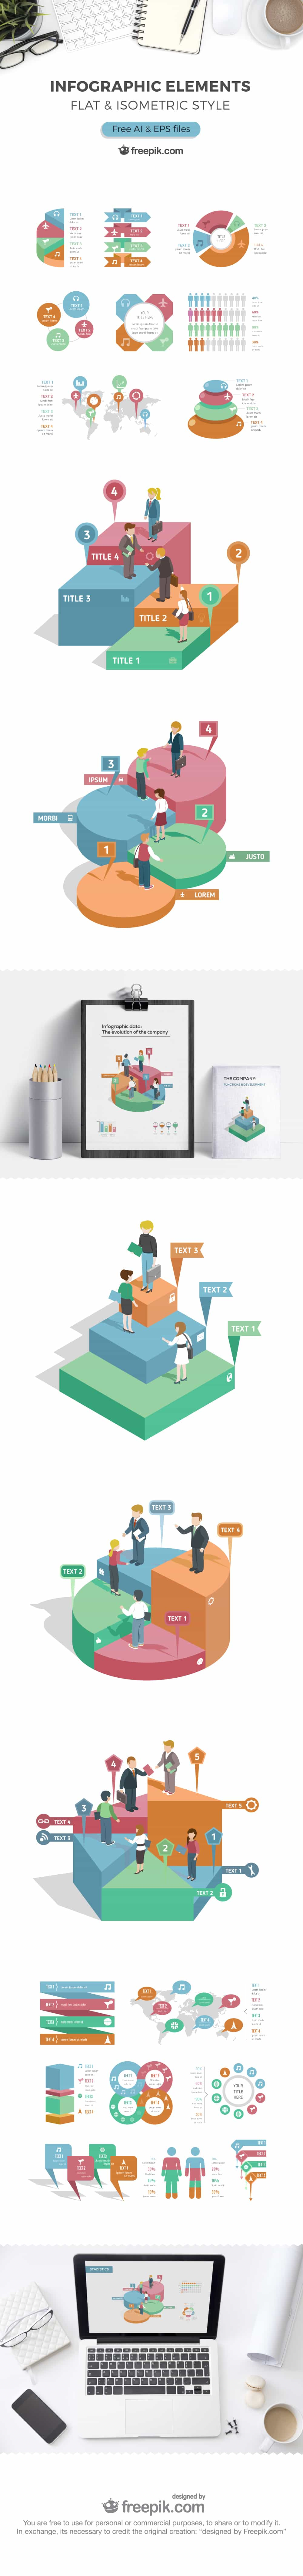 Flat and Isometric Style Infographic